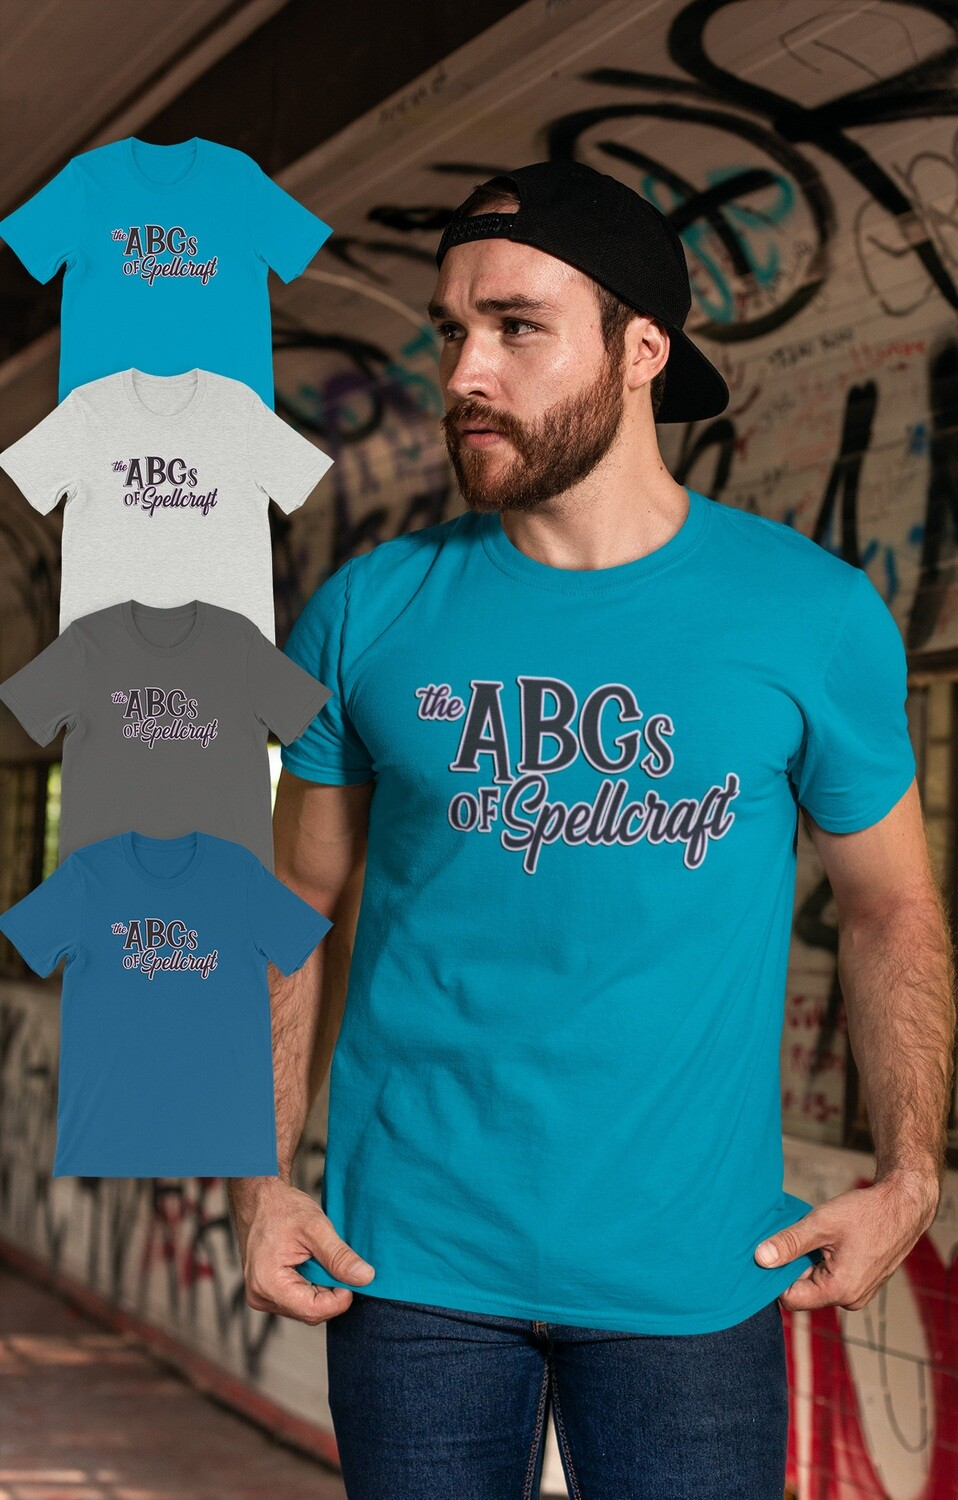 FUNDRAISER ABCs of Spellcraft Short-Sleeve Unisex T-Shirt